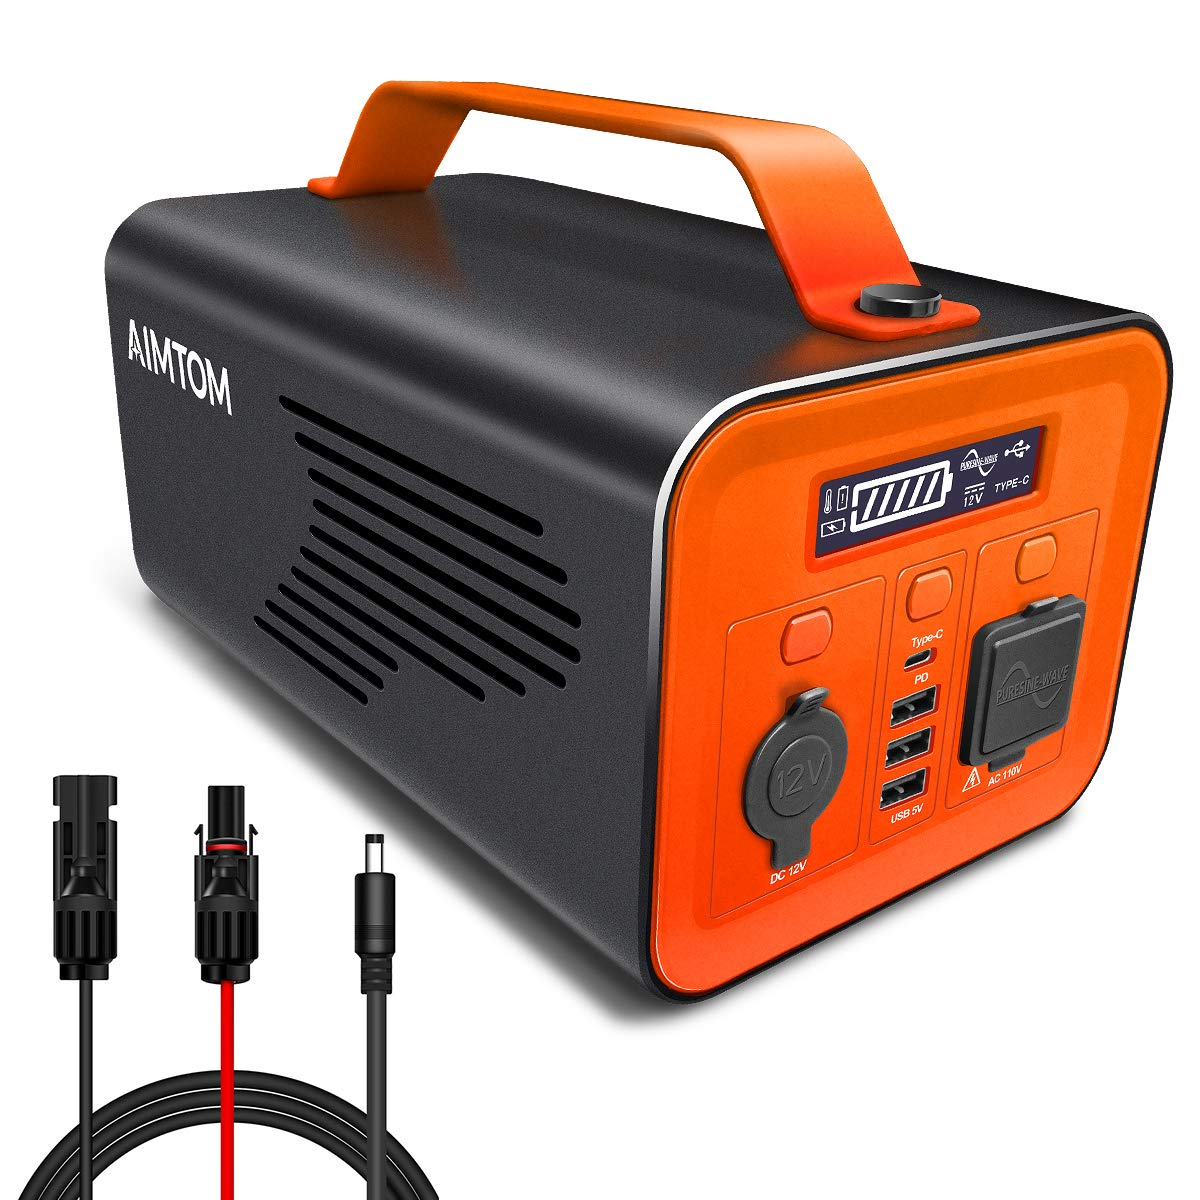 AIMTOM 230Wh Portable Power Station, Lithium Battery Powered Generator, 110V 200W AC, 60W Type-C PD, 12V Carport and USB Ports, Pure Sine Wave, Solar Ready for Outdoors Camping Off-Grid RV CPAP BiPAP